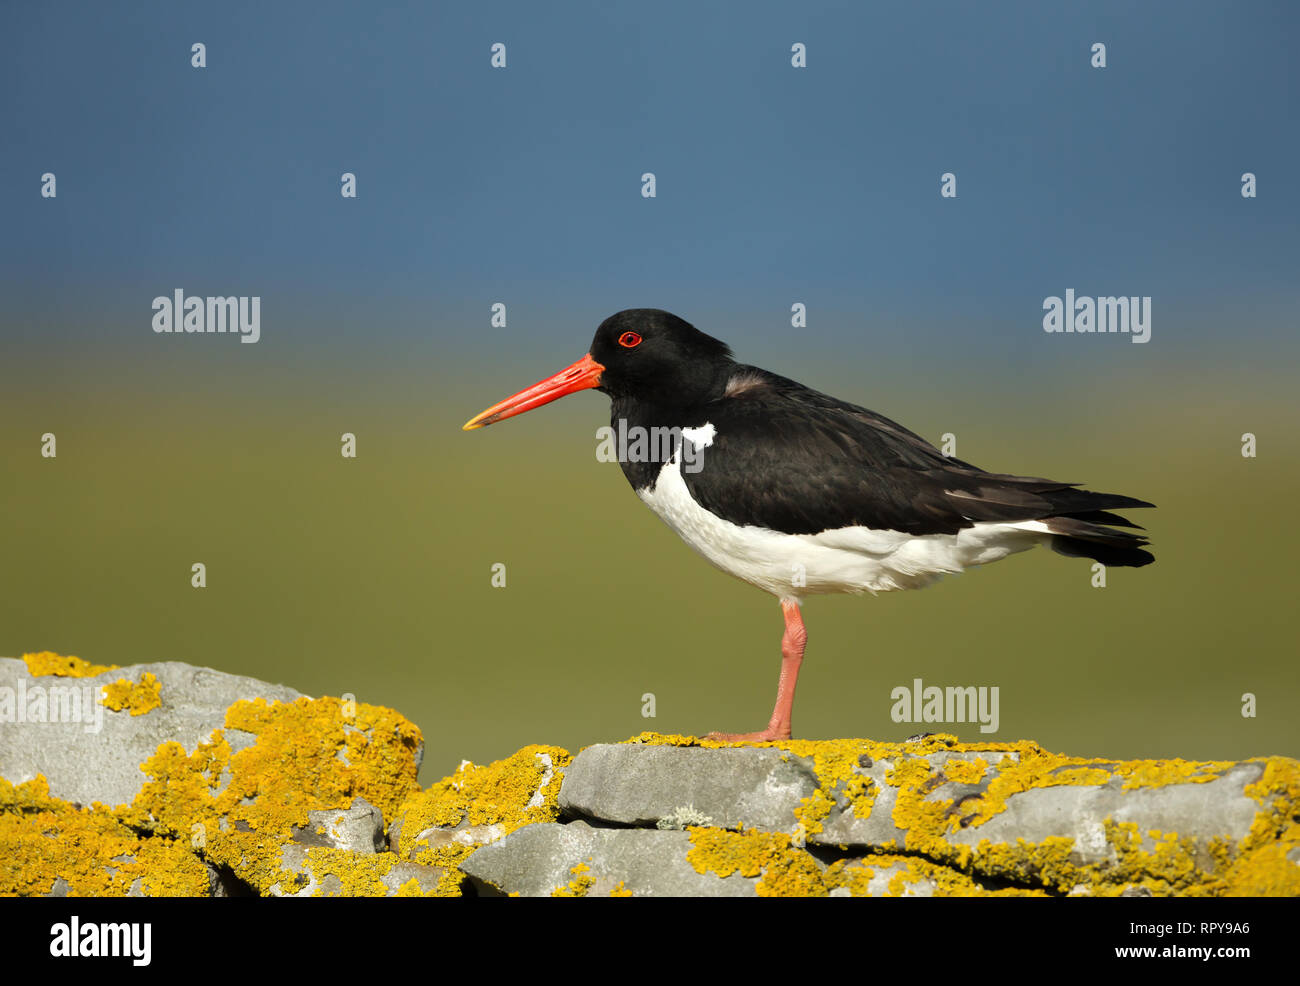 Close up of Oystercatcher (Haematopus ostralegus) perched on a mossy stone fence in Scotland, UK. - Stock Image